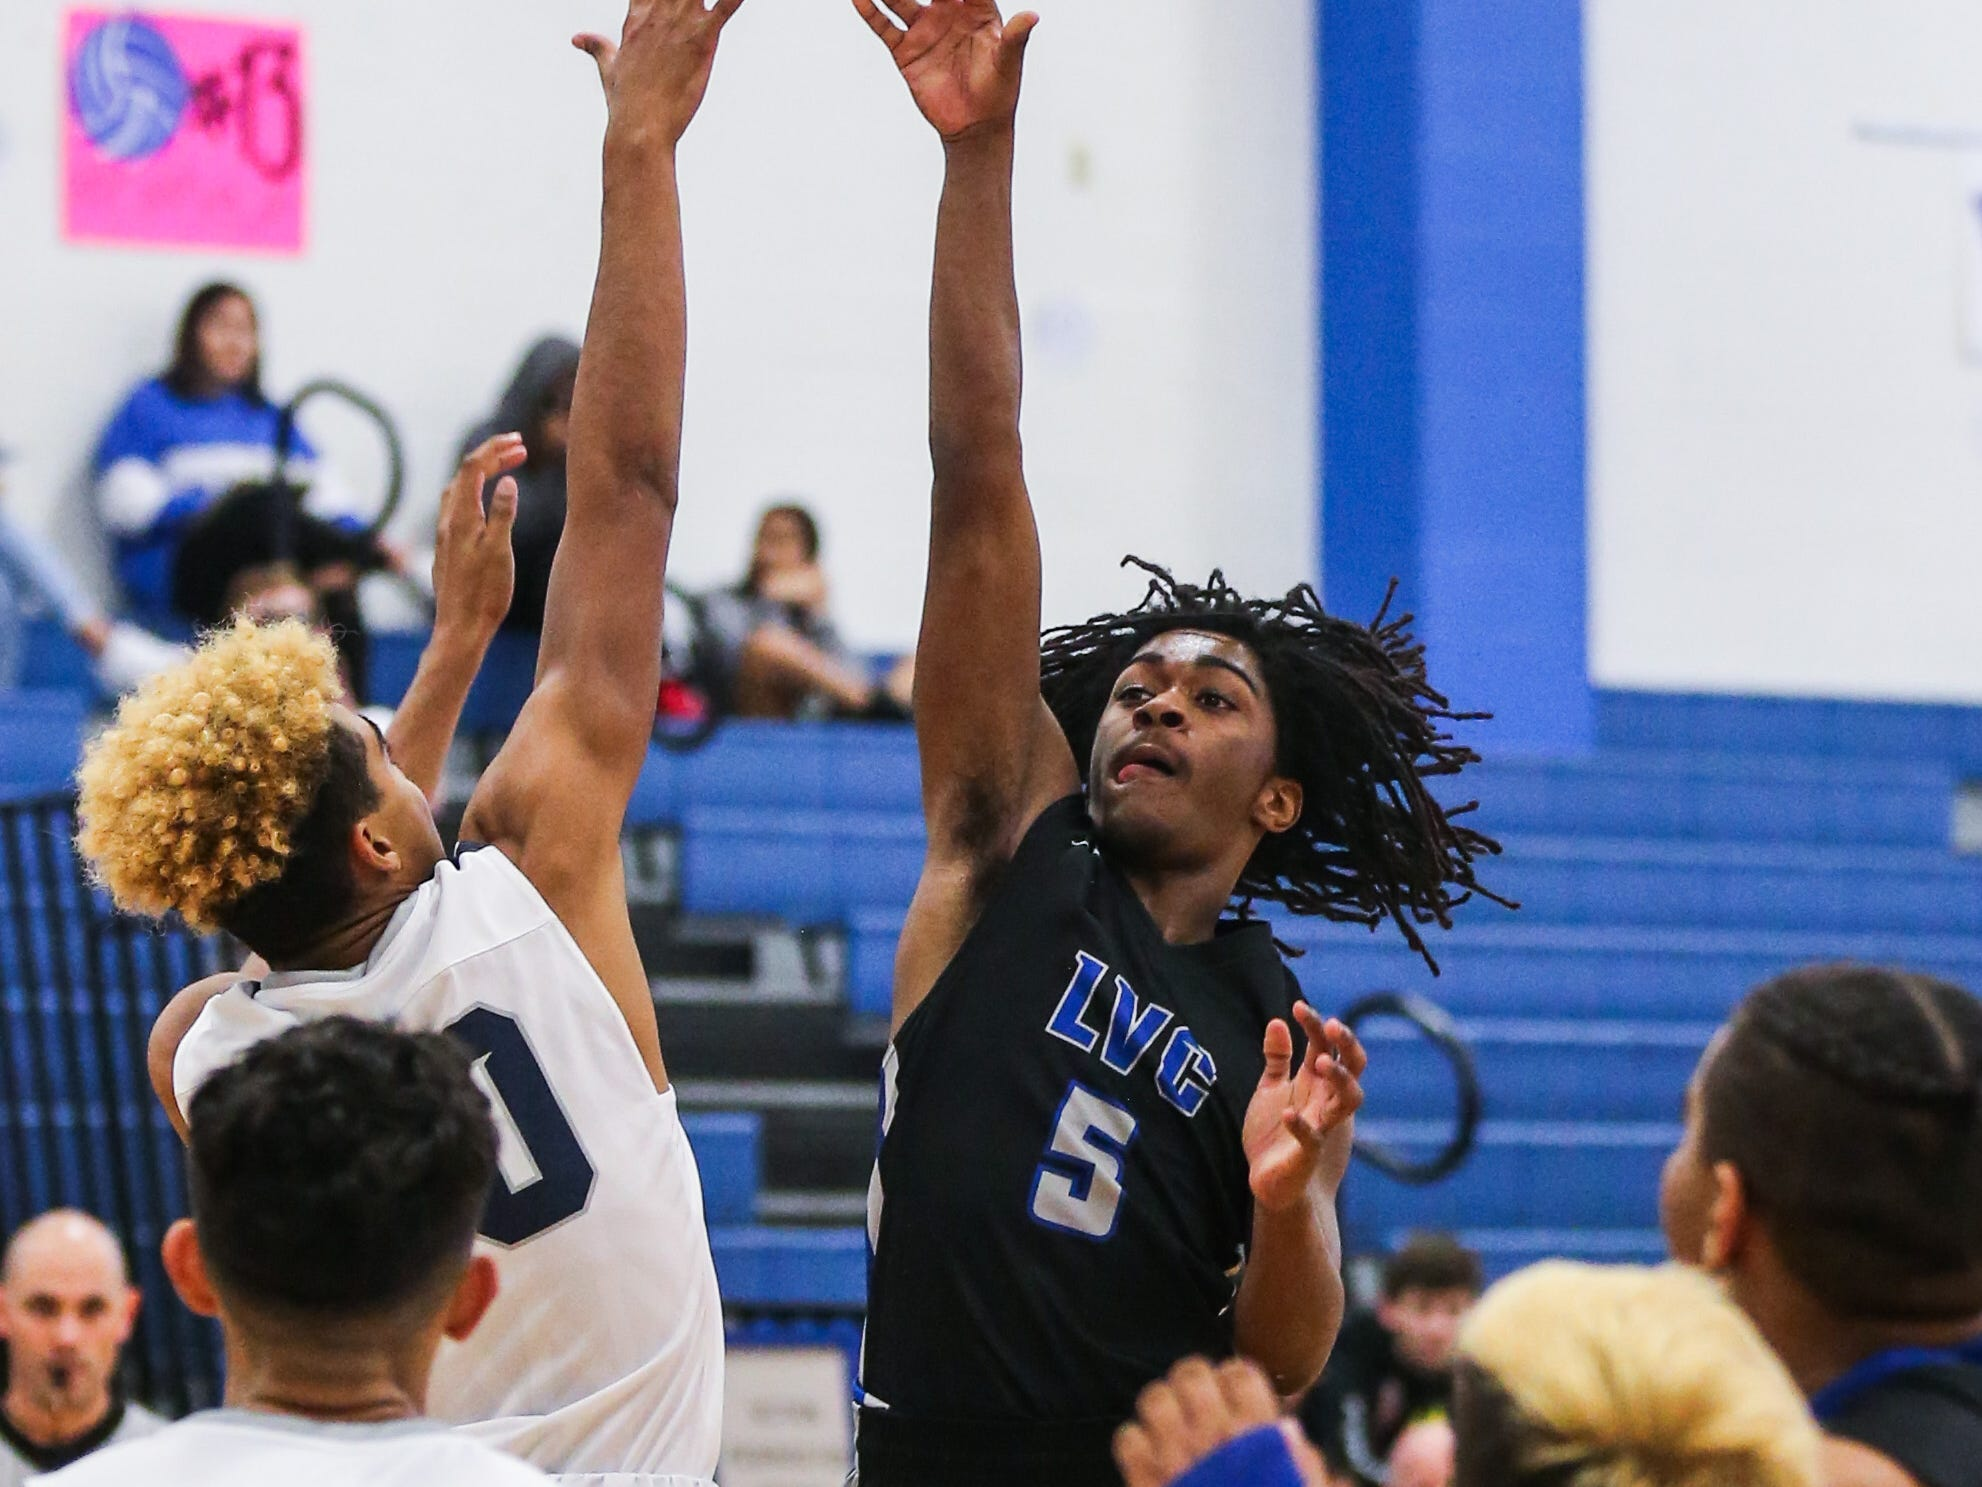 Lake View's Ahmad Daniels jumps to make a shot against Del Valle during the Doug McCutchen Basketball Tournament Thursday, Nov. 29, 2018, at Central High School.